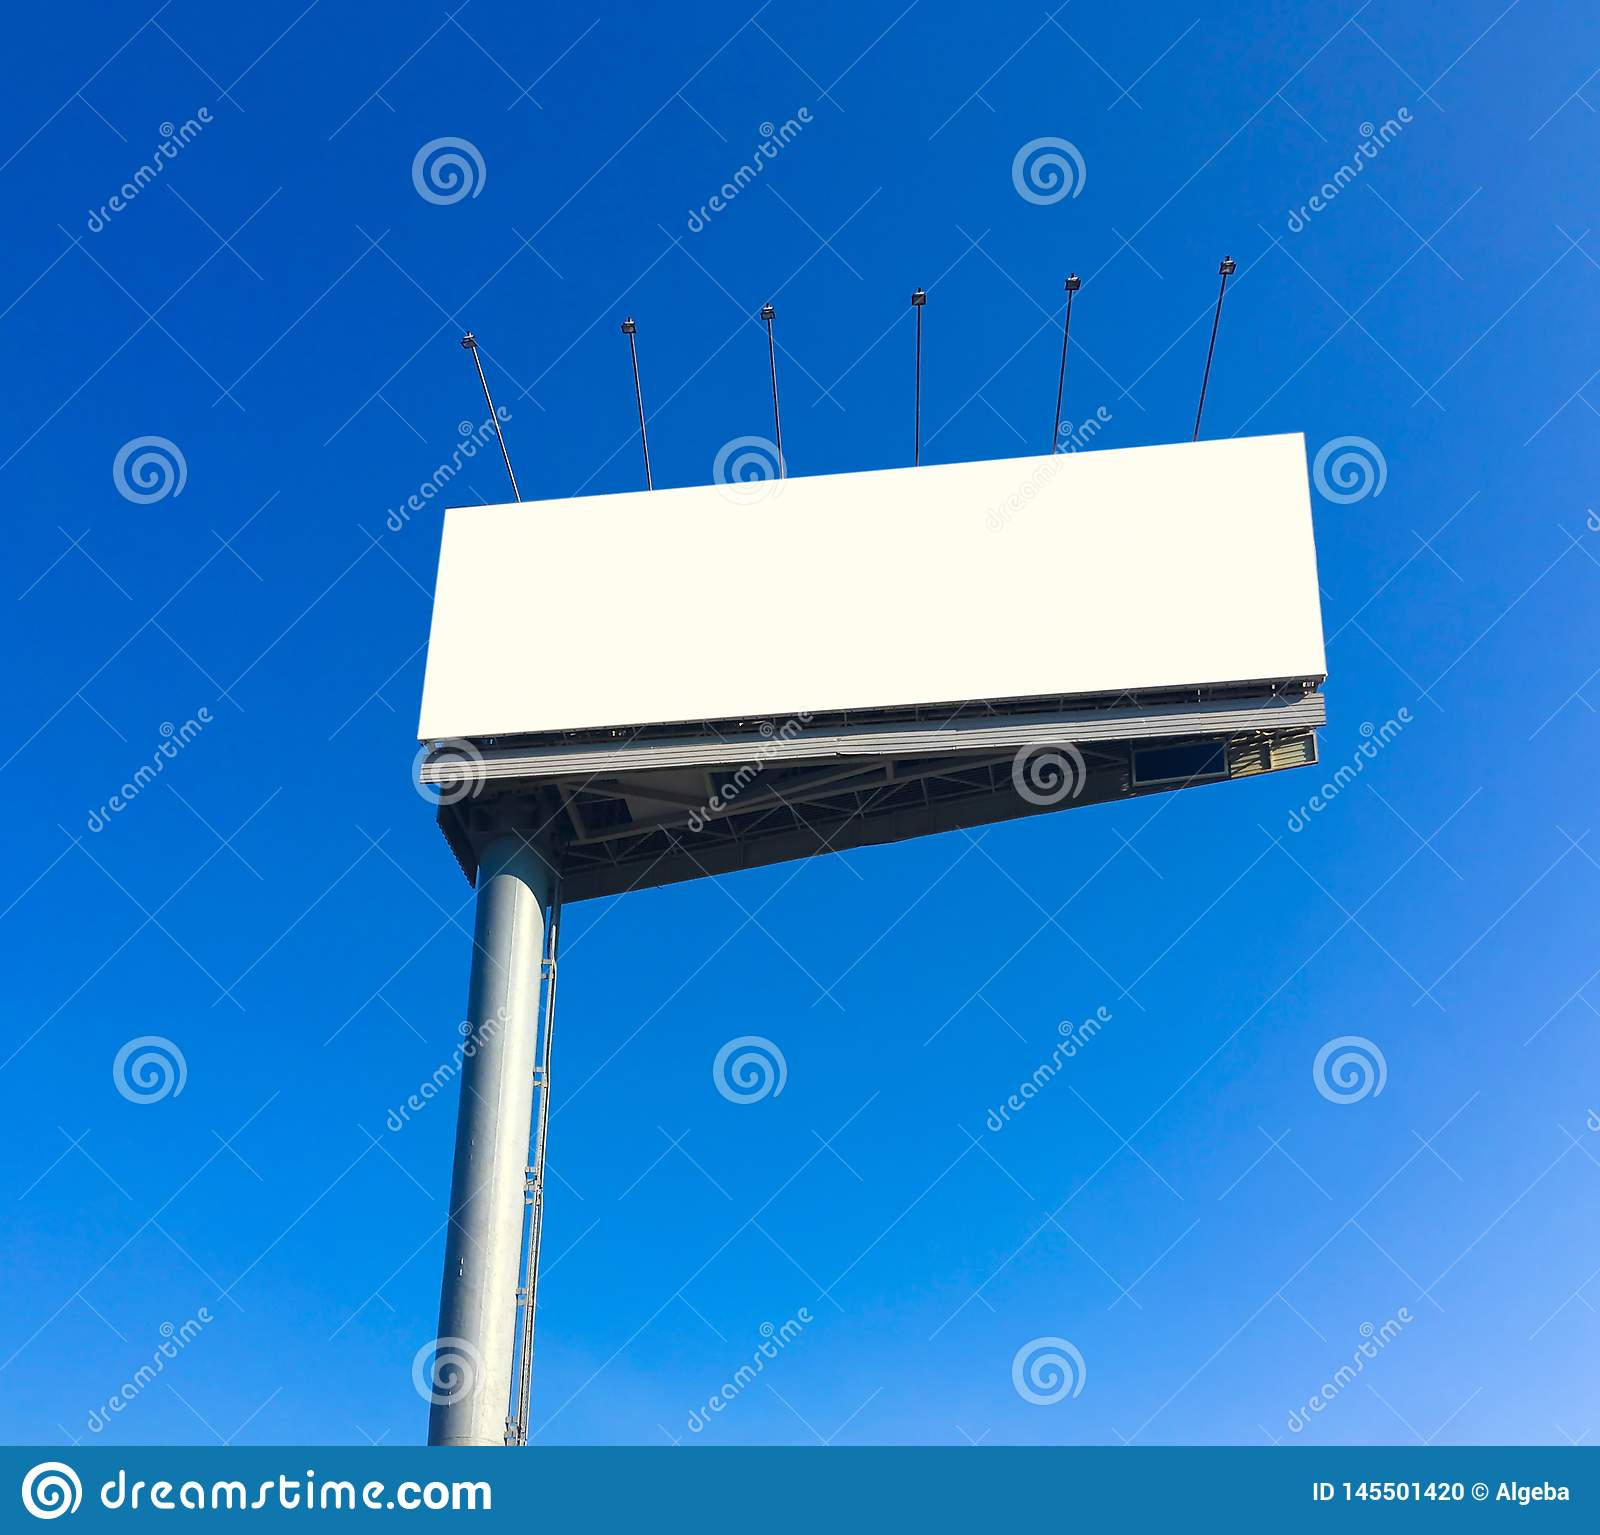 Blank billboard at blue sky background